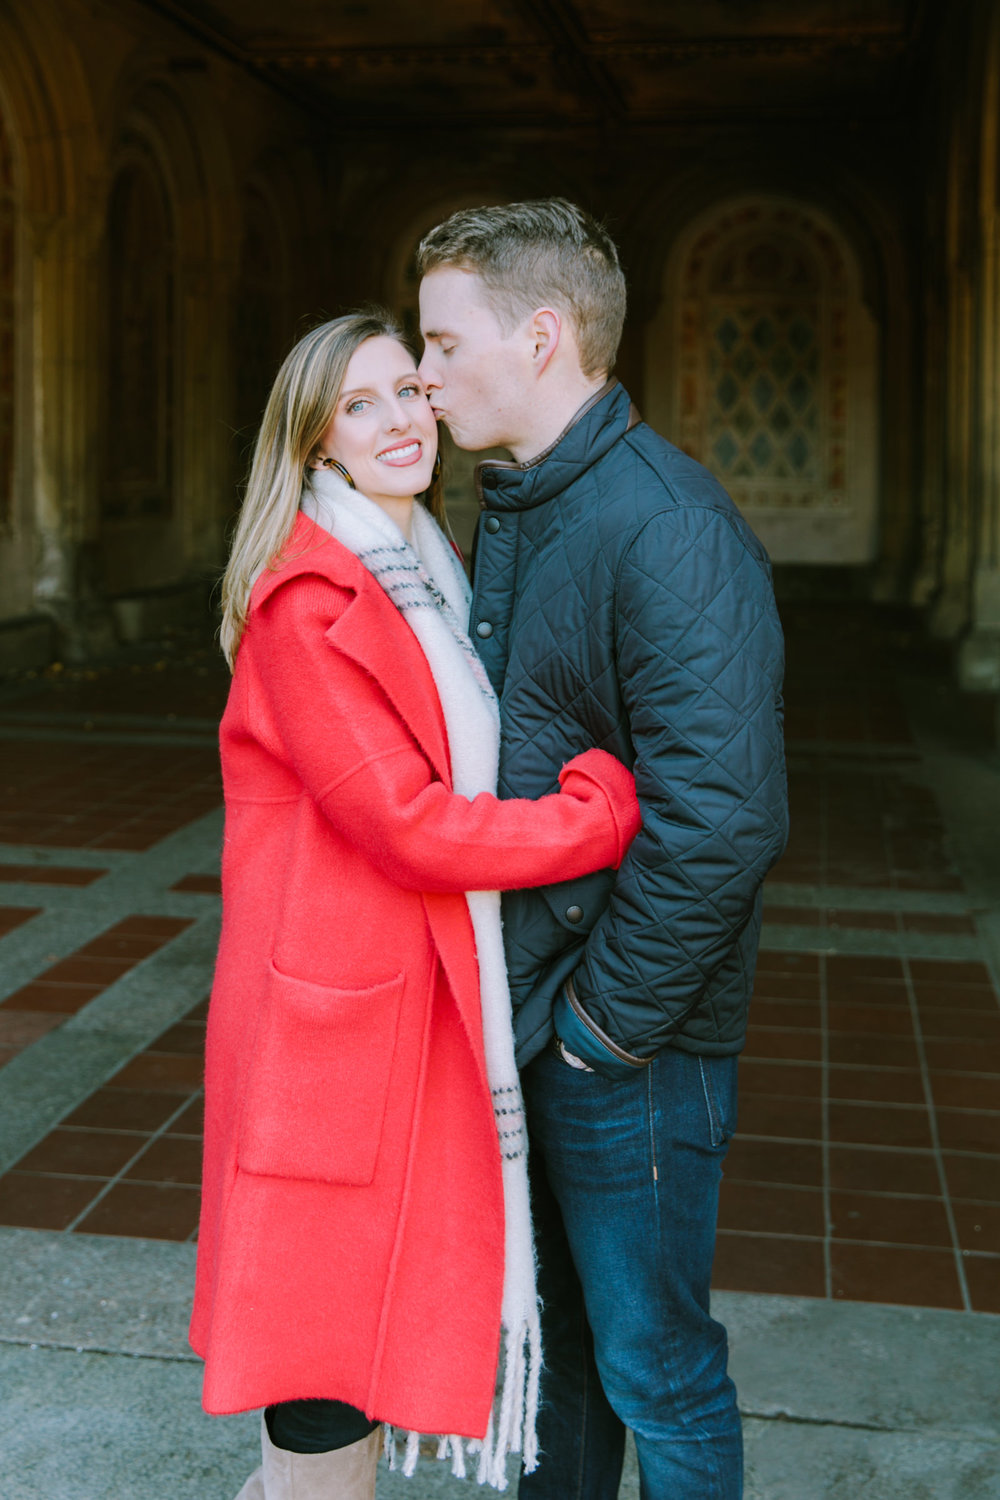 Central-park-fall-engagement-session-by Tanya Isaeva-44.jpg